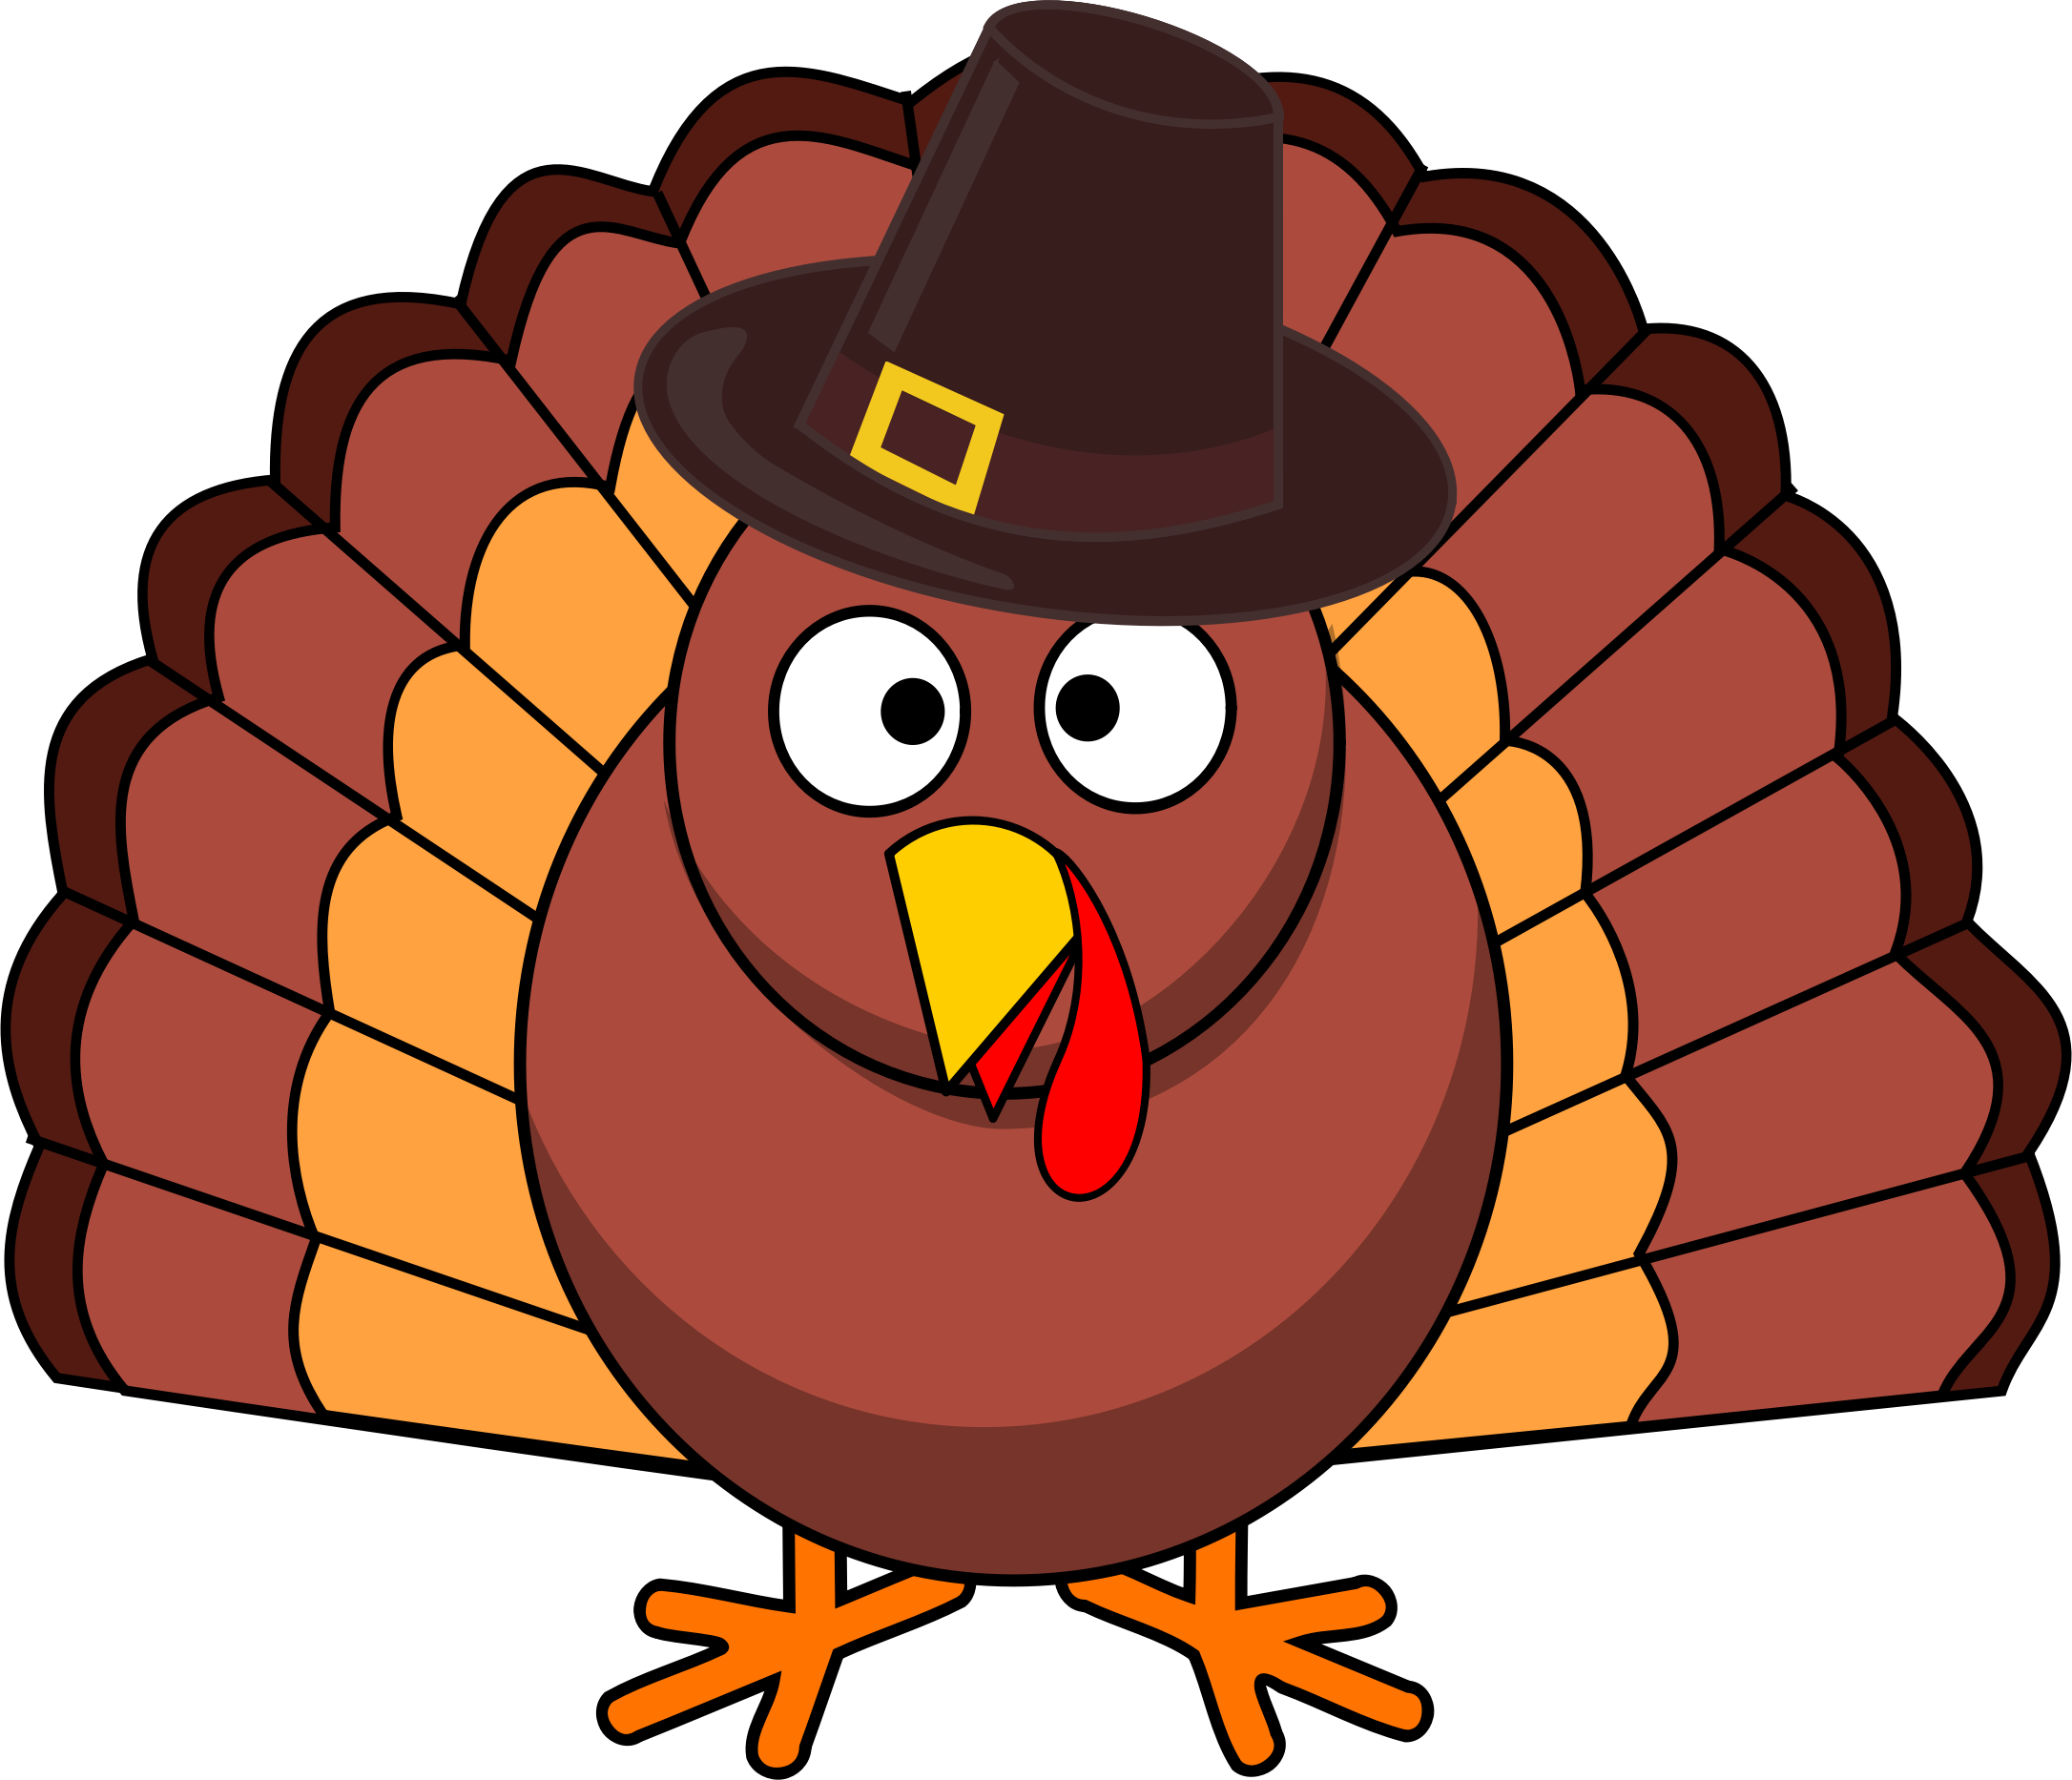 Png turkey. Bird transparent images free